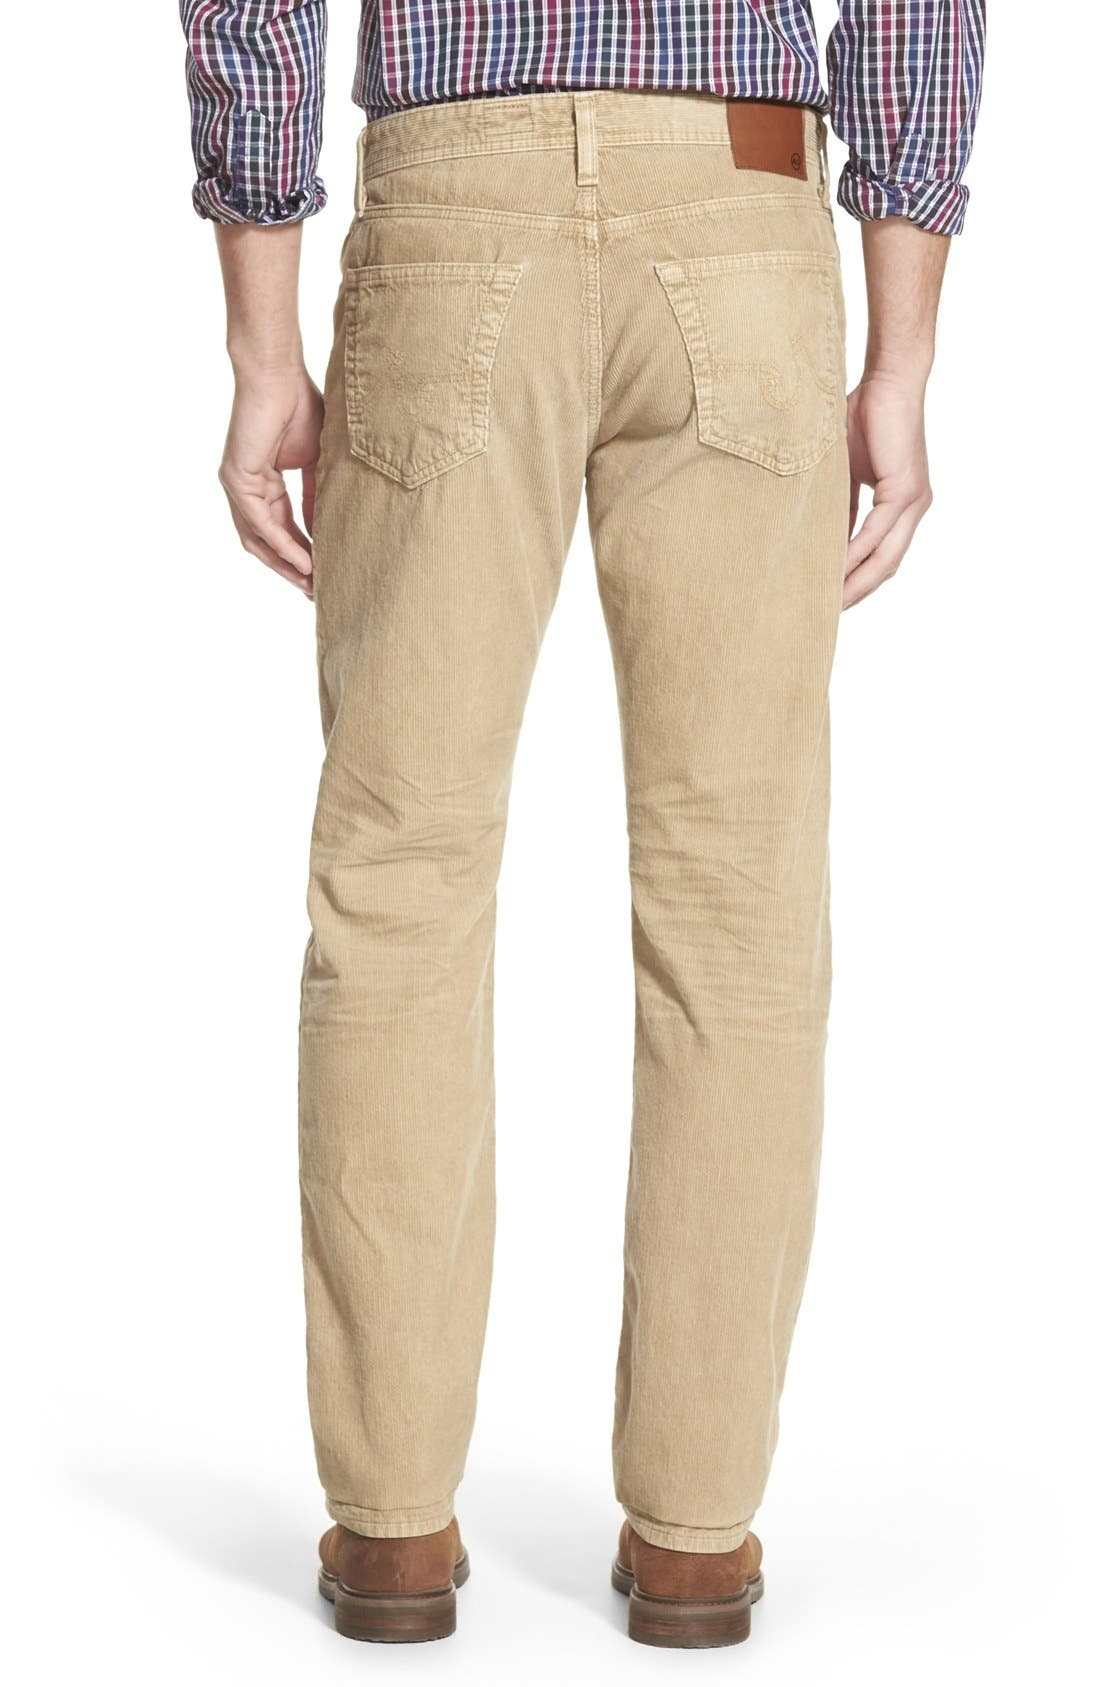 'Graduate' Tailored Straight Leg Corduroy Pants,                             Alternate thumbnail 39, color,